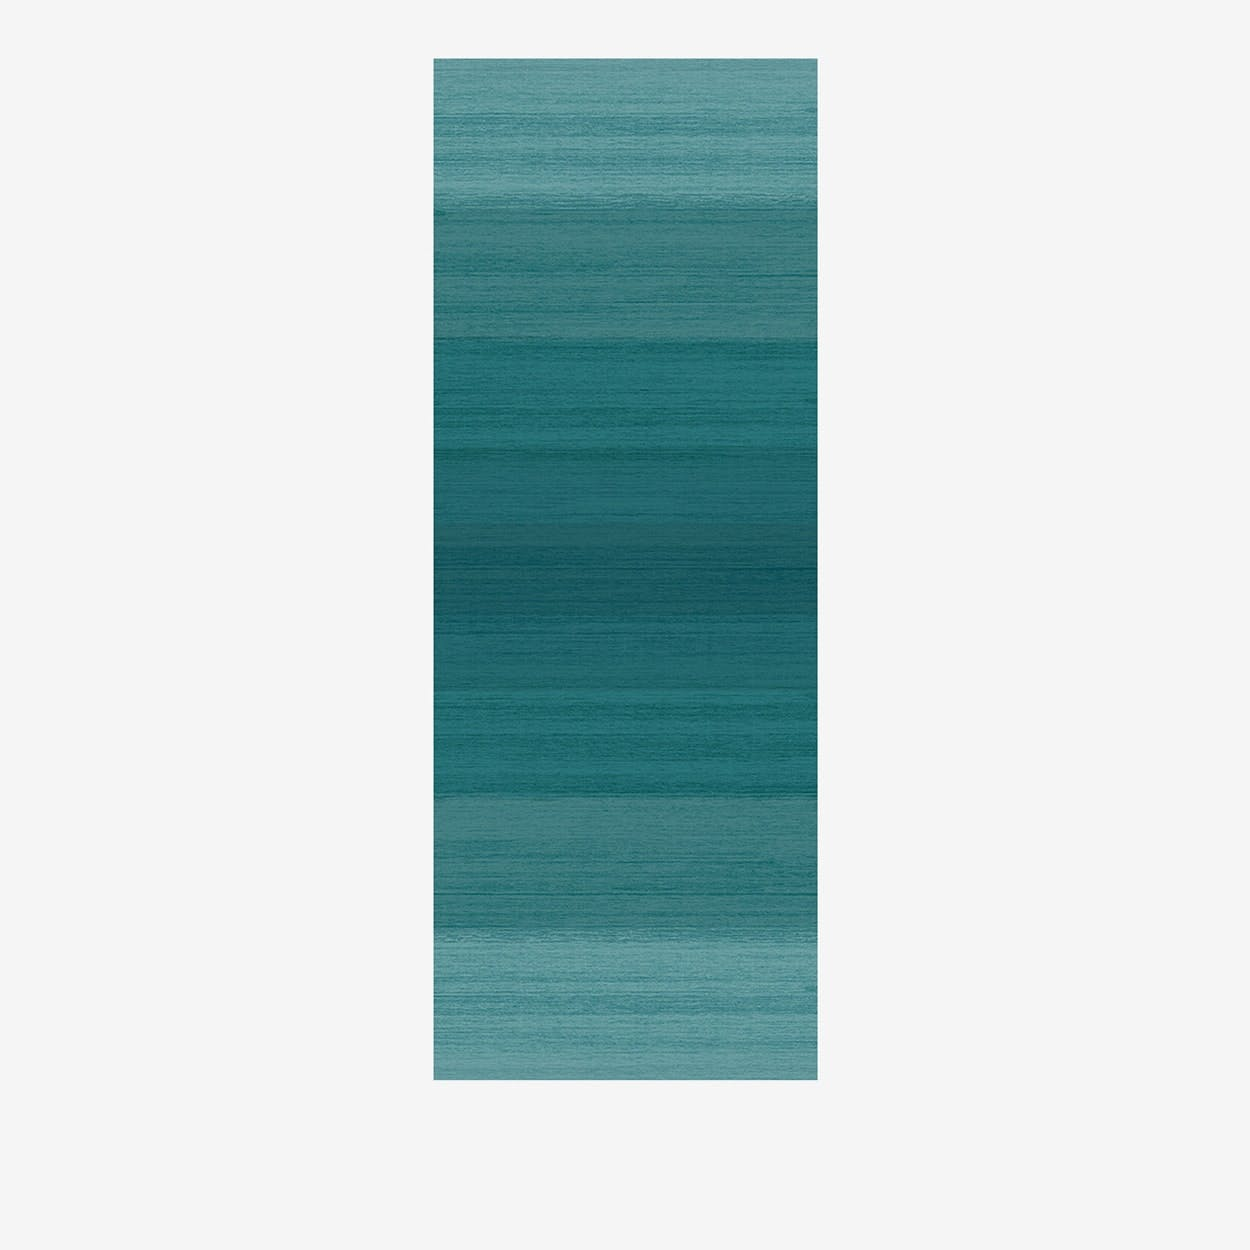 Ombre Rug in Blue - Ruggable